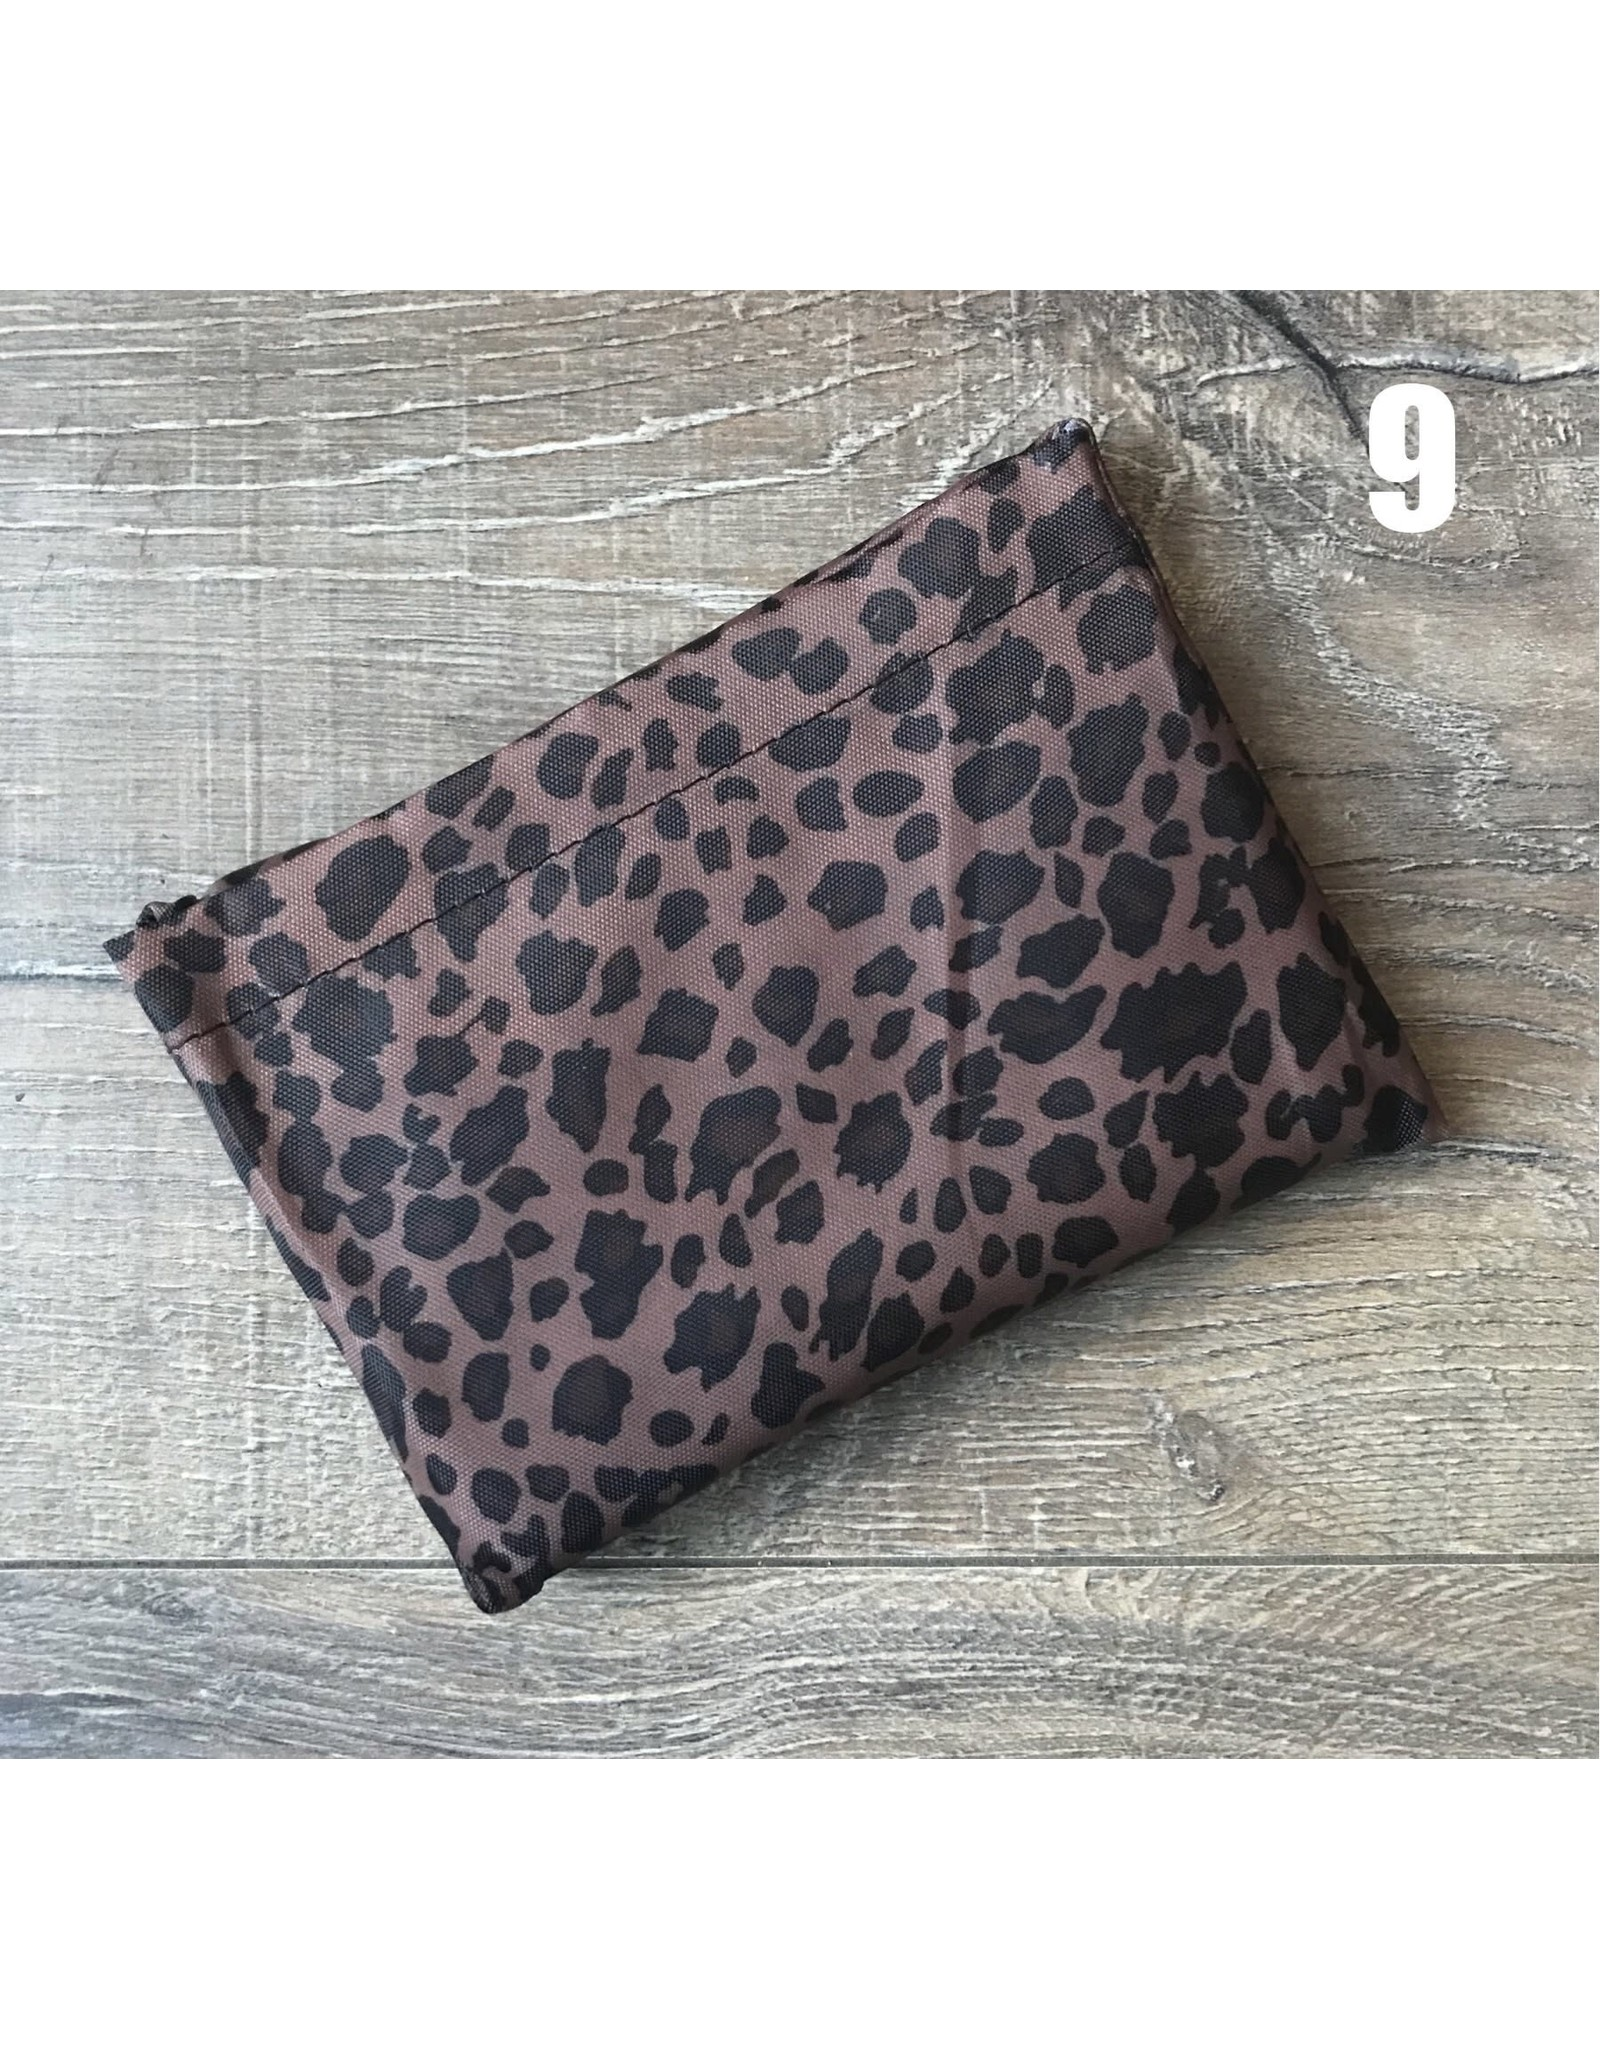 Chic Addition Eco bags (large) - multiple prints